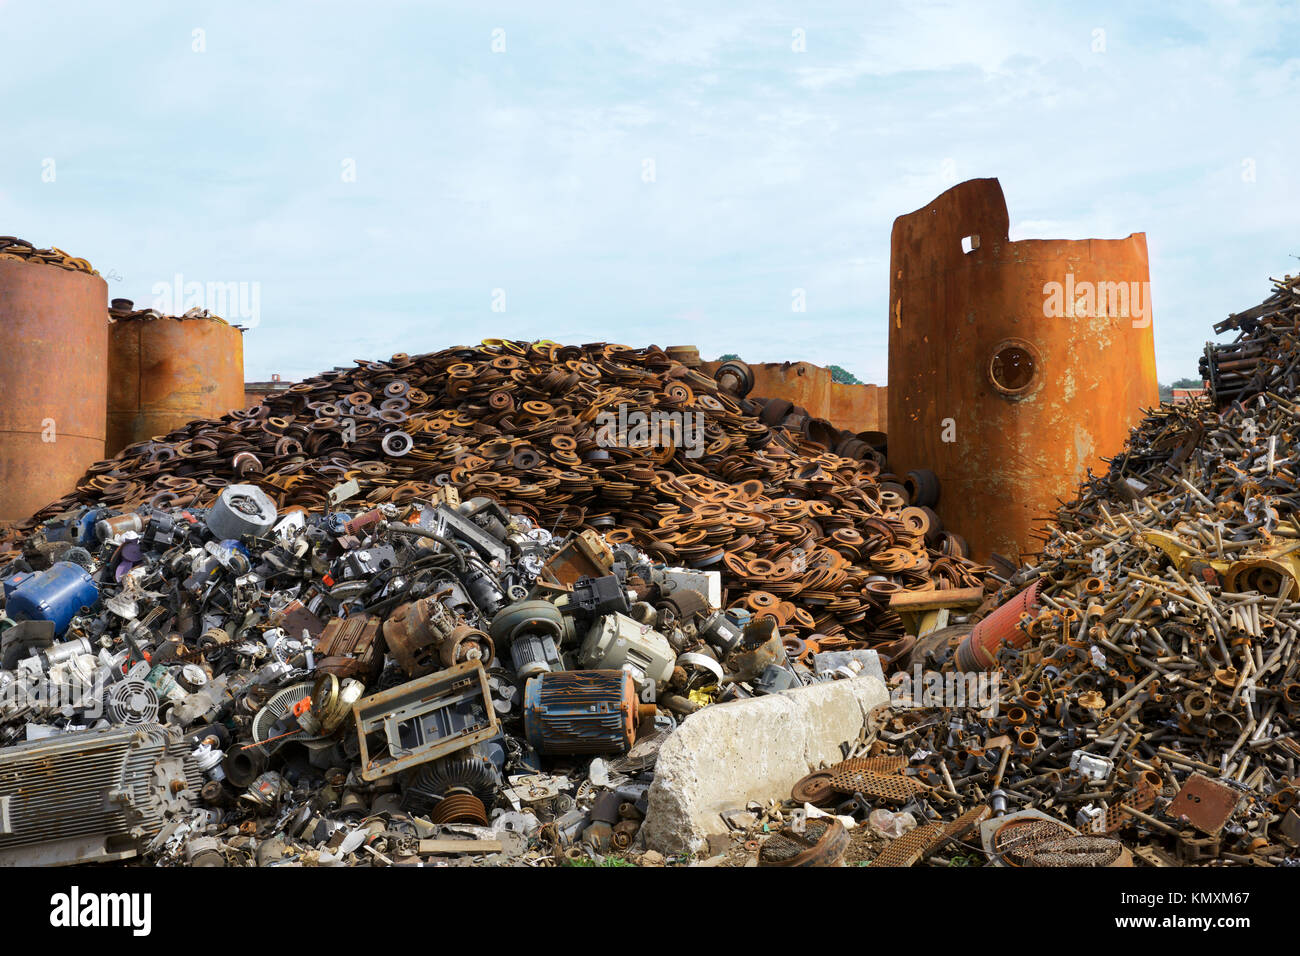 recycling center  with bales of metal and crane with claw tossing truck  and rusty wheels - Stock Image